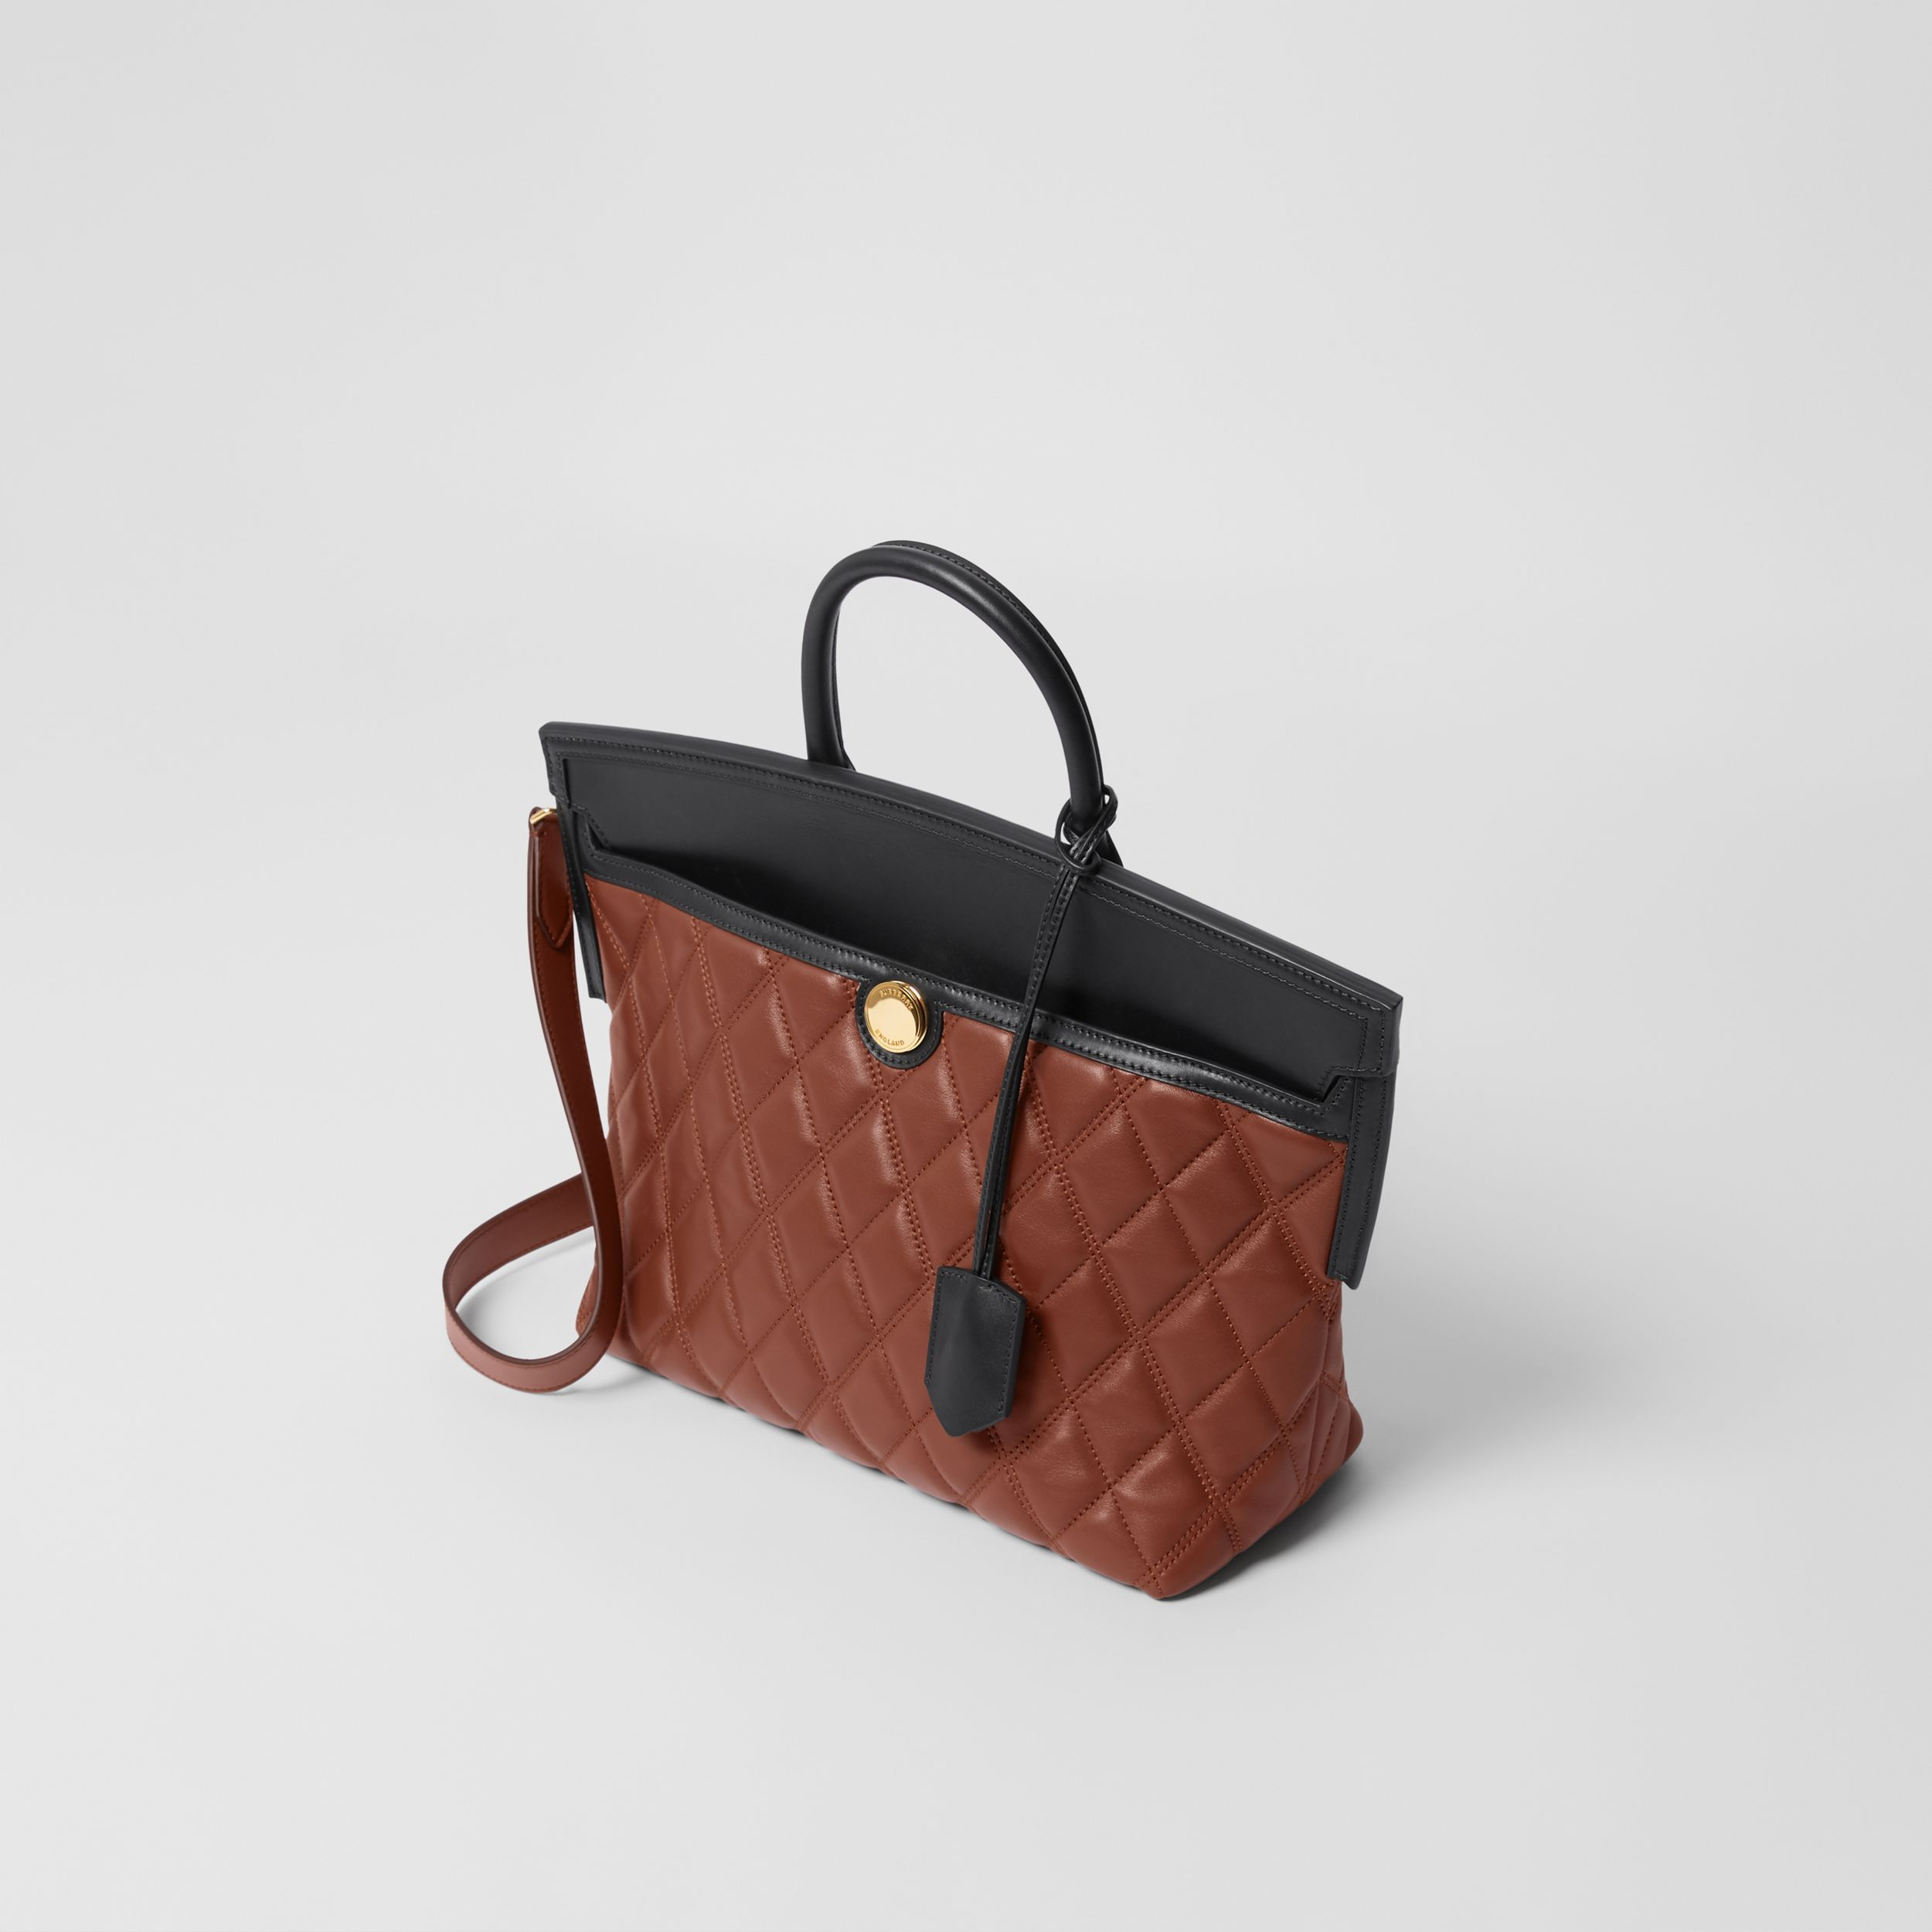 Small Quilted Lambskin Society Top Handle Bag in Tan - Women | Burberry - 4